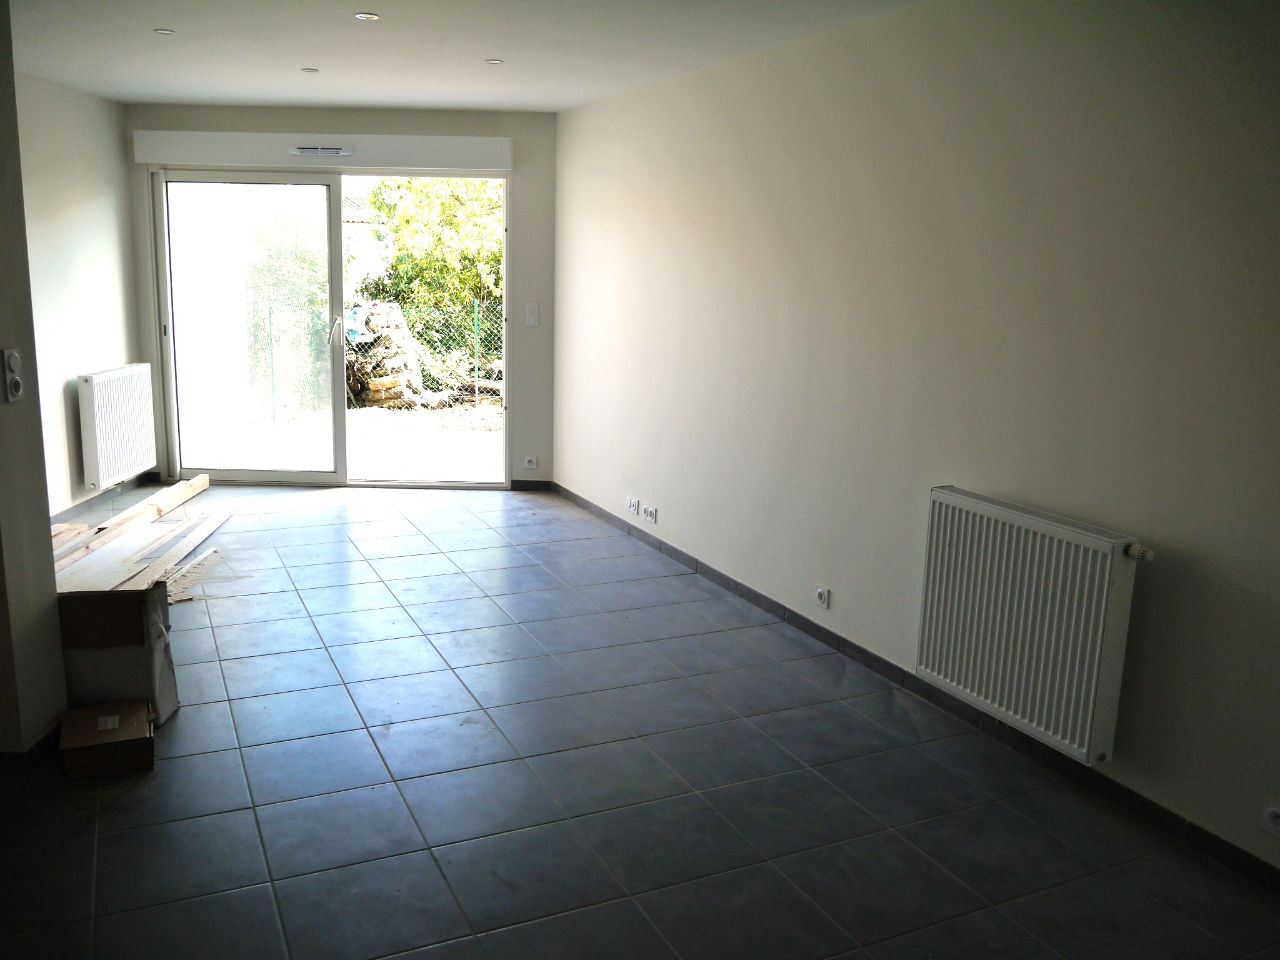 A vendre appartement neuf T4 3 chambres à Biscarrosse 40600